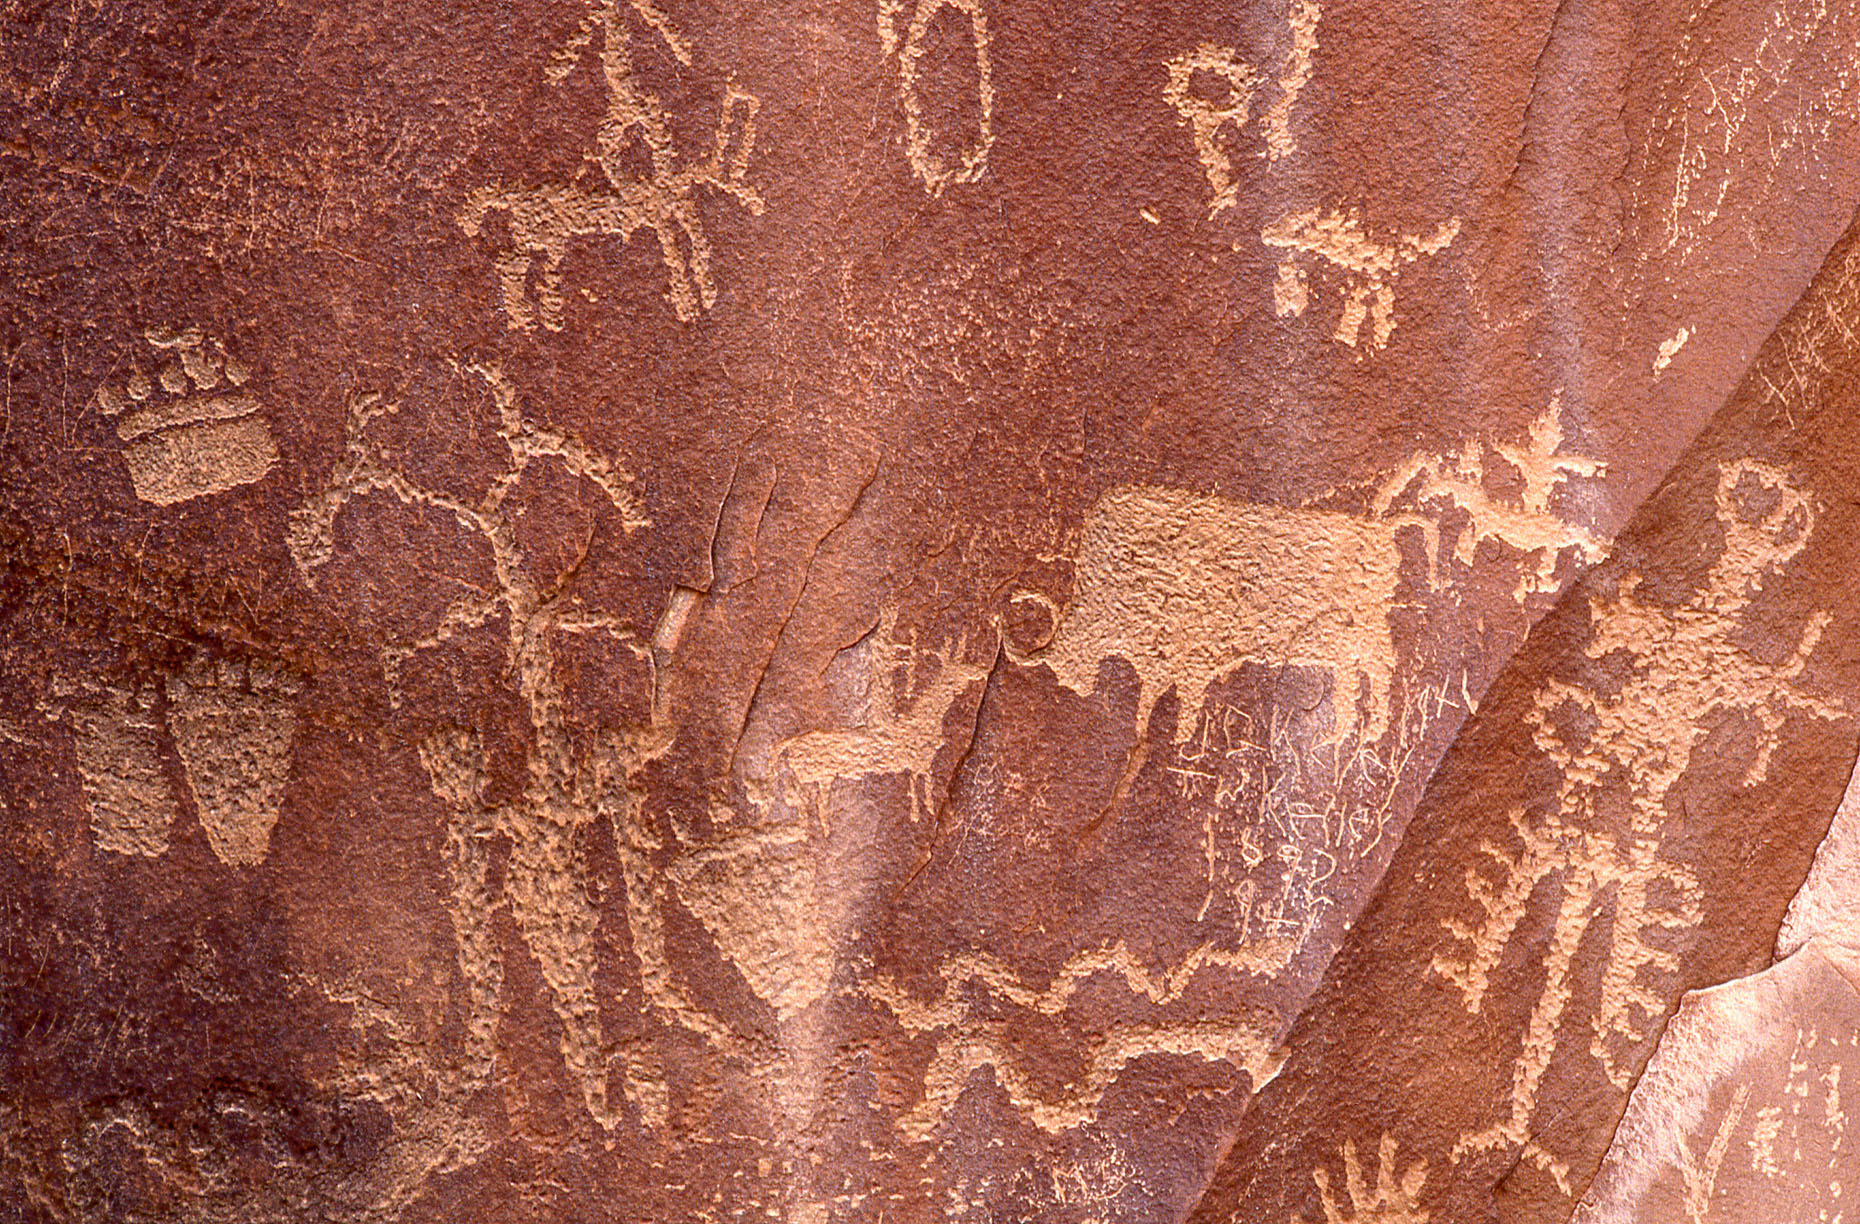 Petroglyphs, John Annerino, Newspaper Rock State Historic Monument, UT